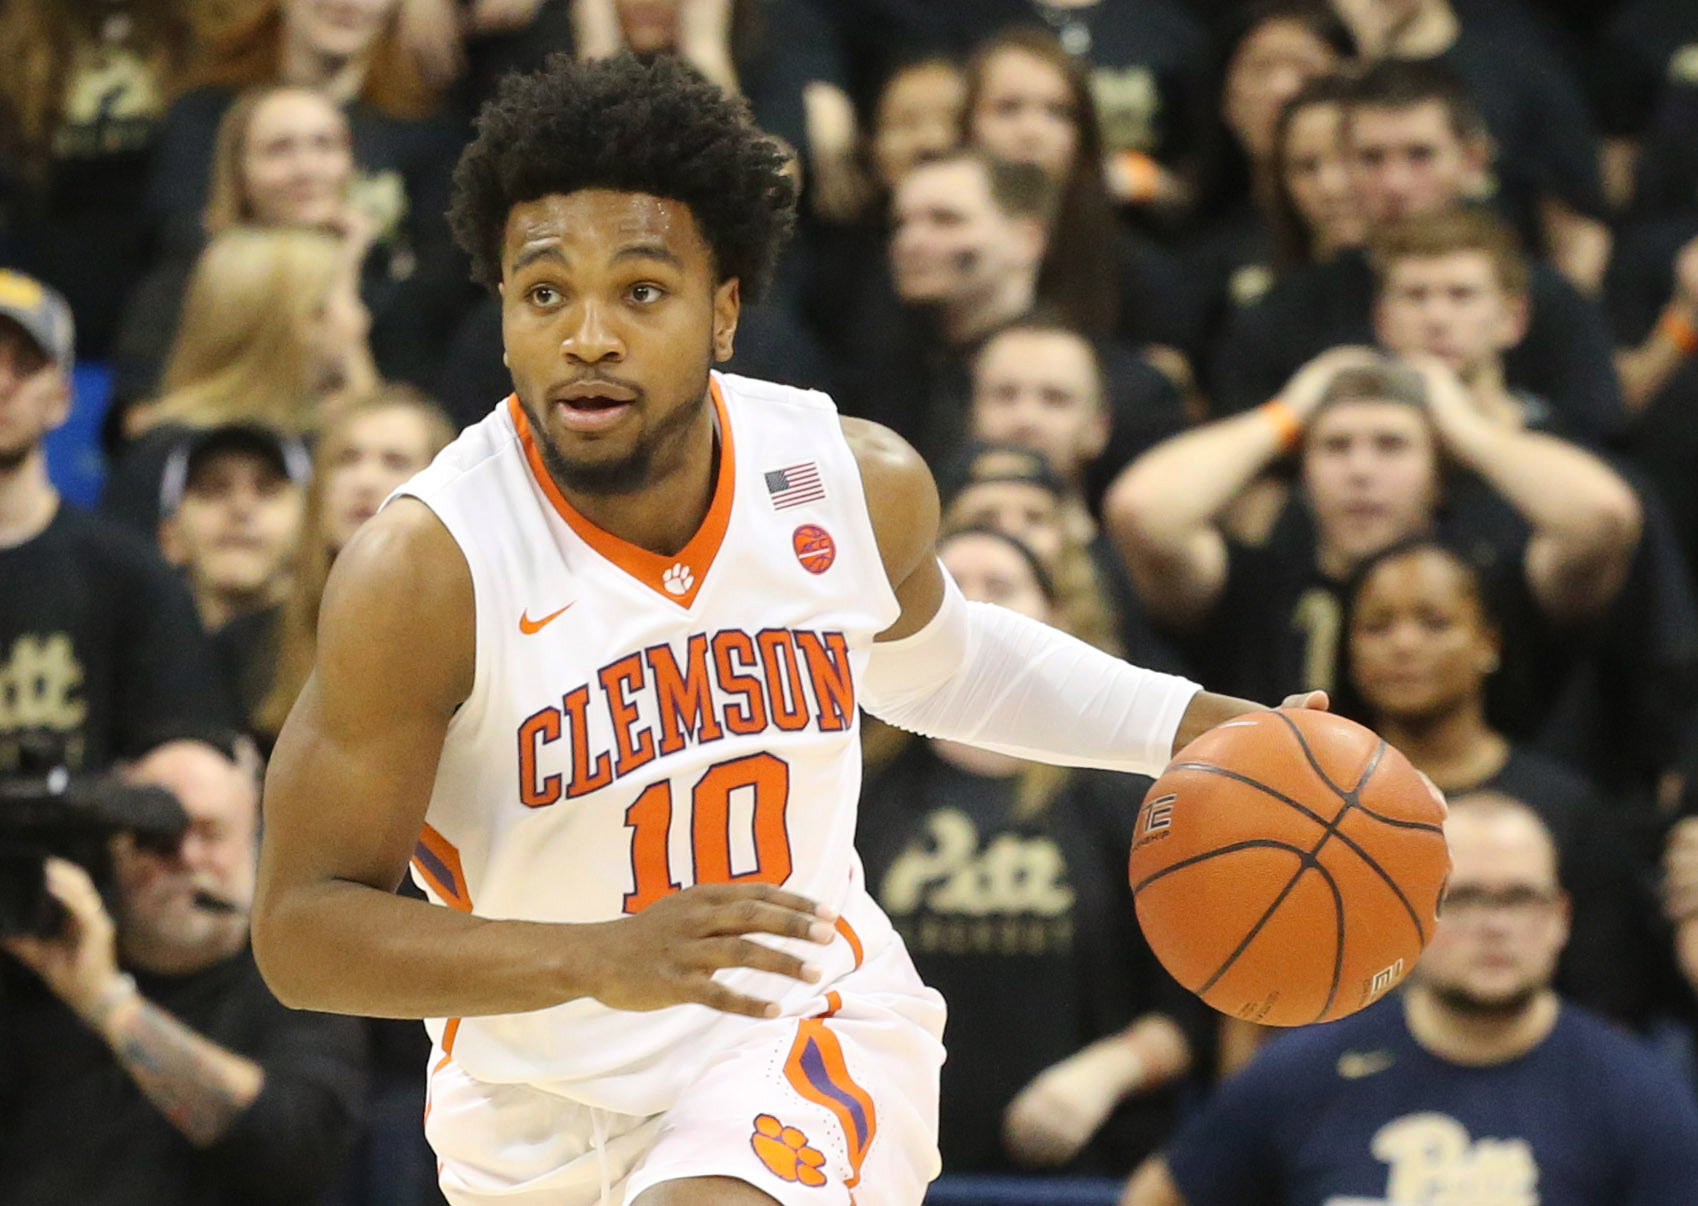 Jan 28, 2017; Pittsburgh, PA, USA; Clemson Tigers guard Gabe DeVoe (10) dribbles the ball against the Pittsburgh Panthers during the second half at the Petersen Events Center. Clemson won 67-60. Mandatory Credit: Charles LeClaire-USA TODAY Sports